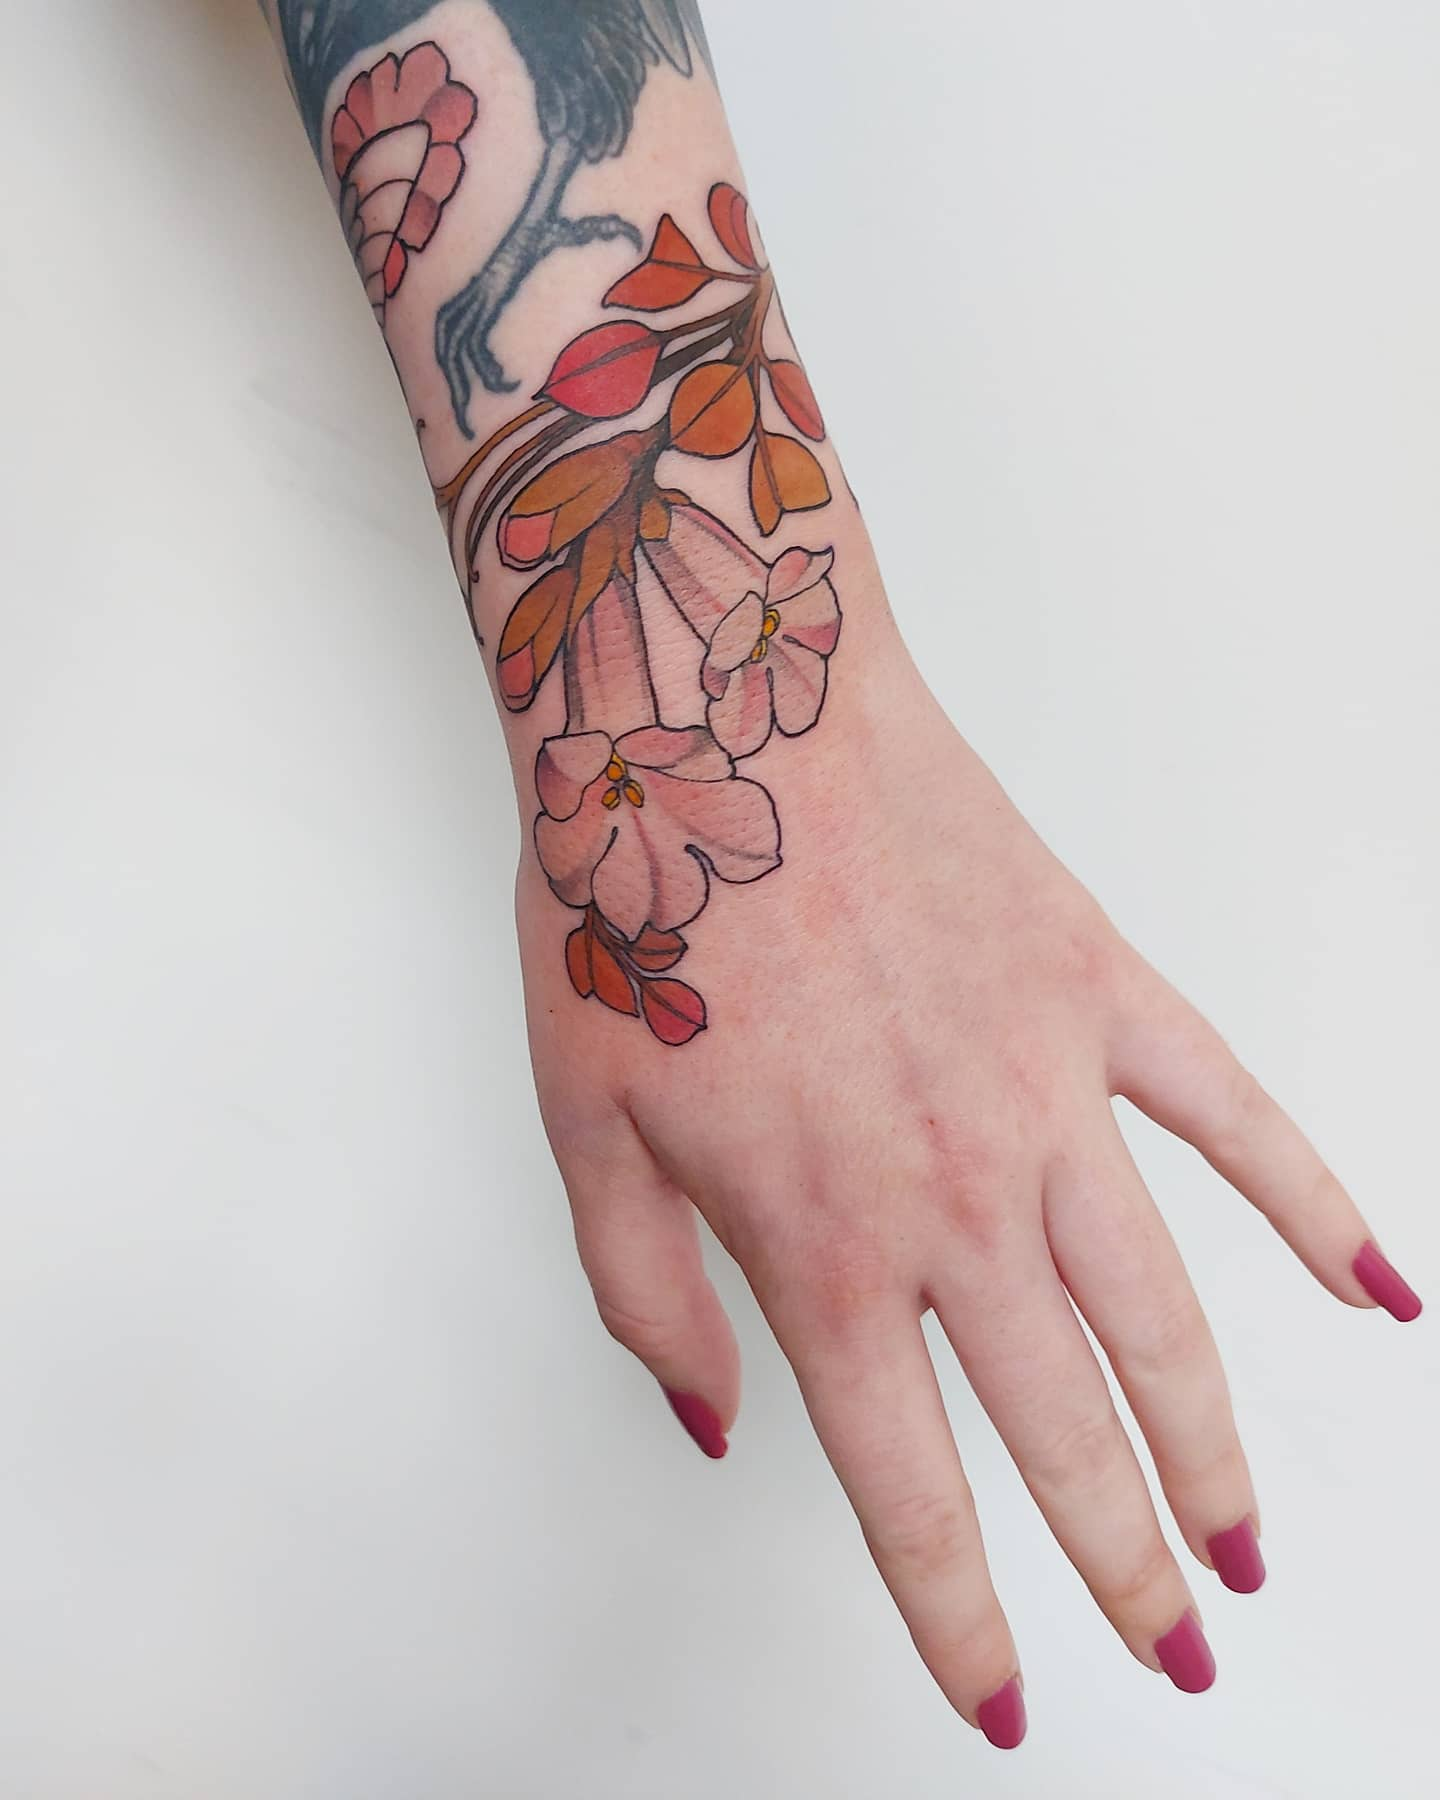 lucy-o-connell-tattoo-artist-hand-flowers